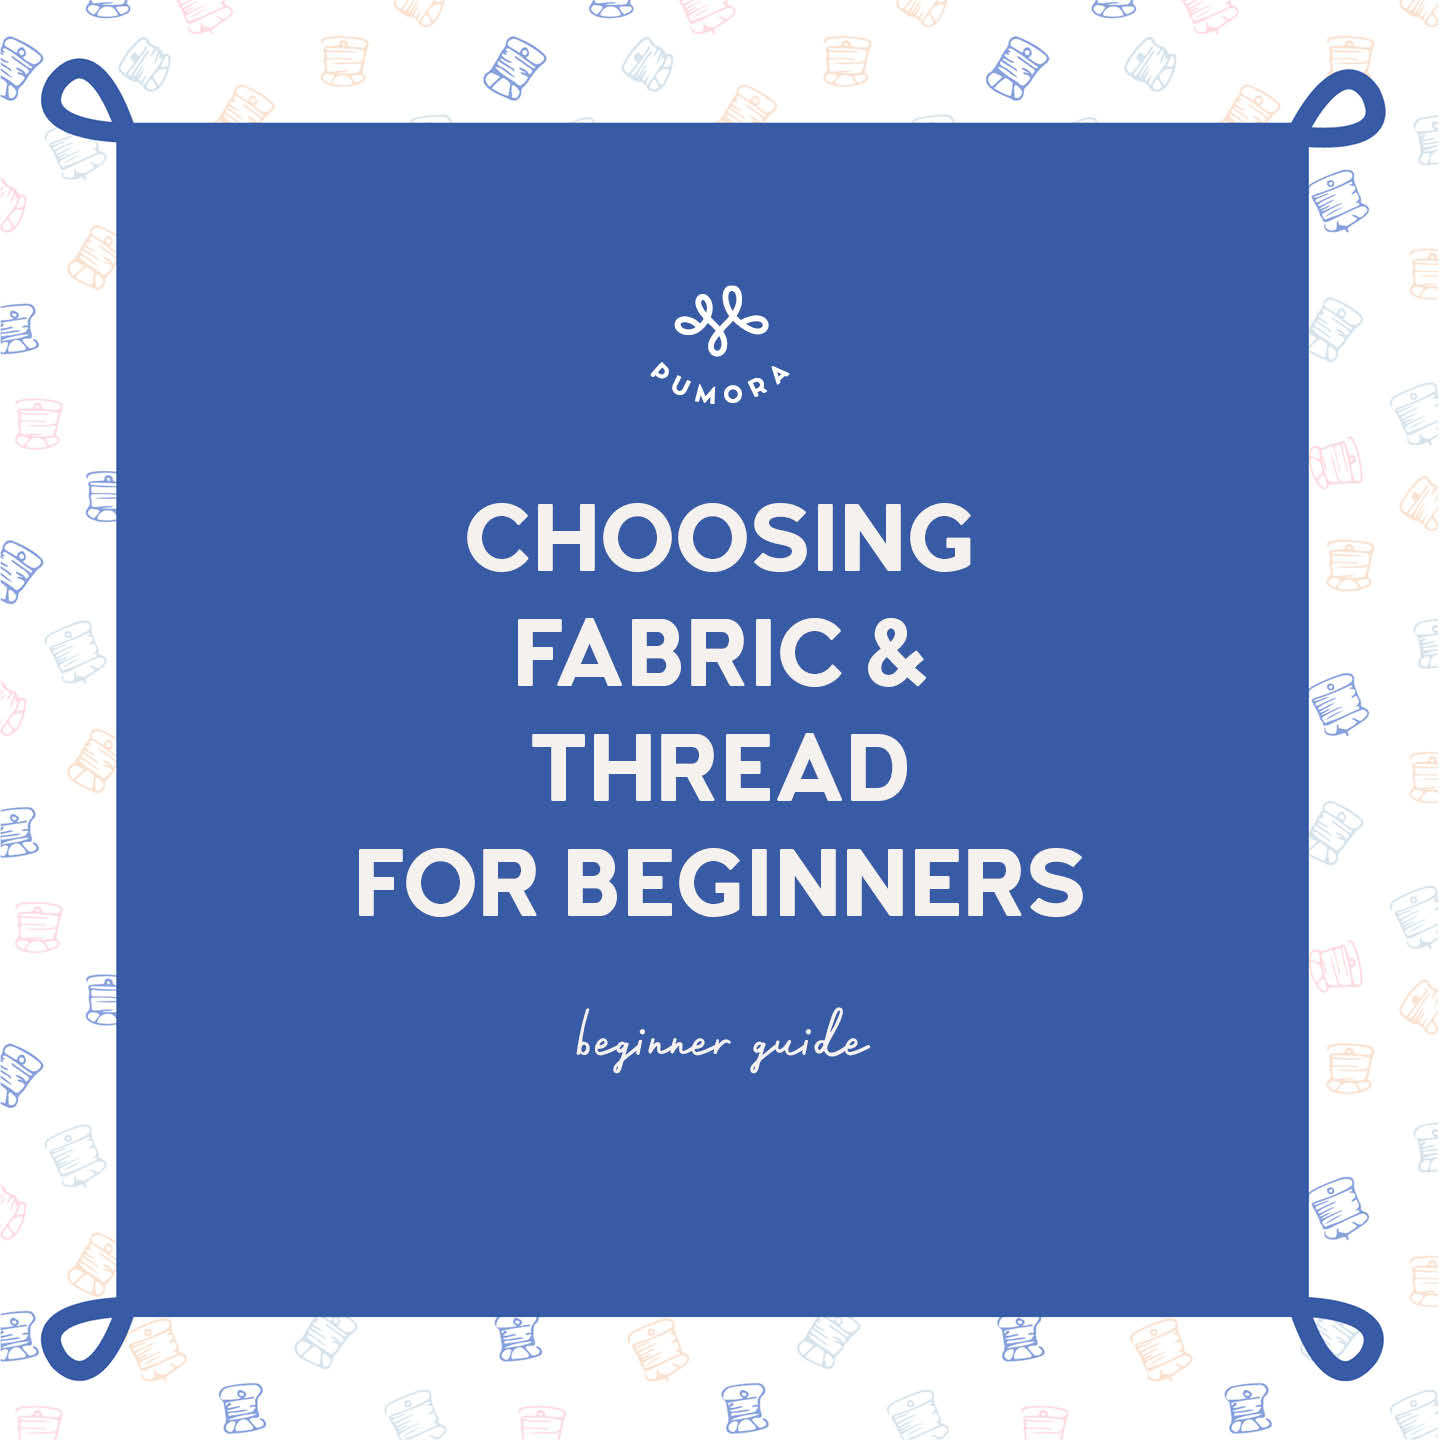 Embroidery fabric and thread - choosing as a beginner